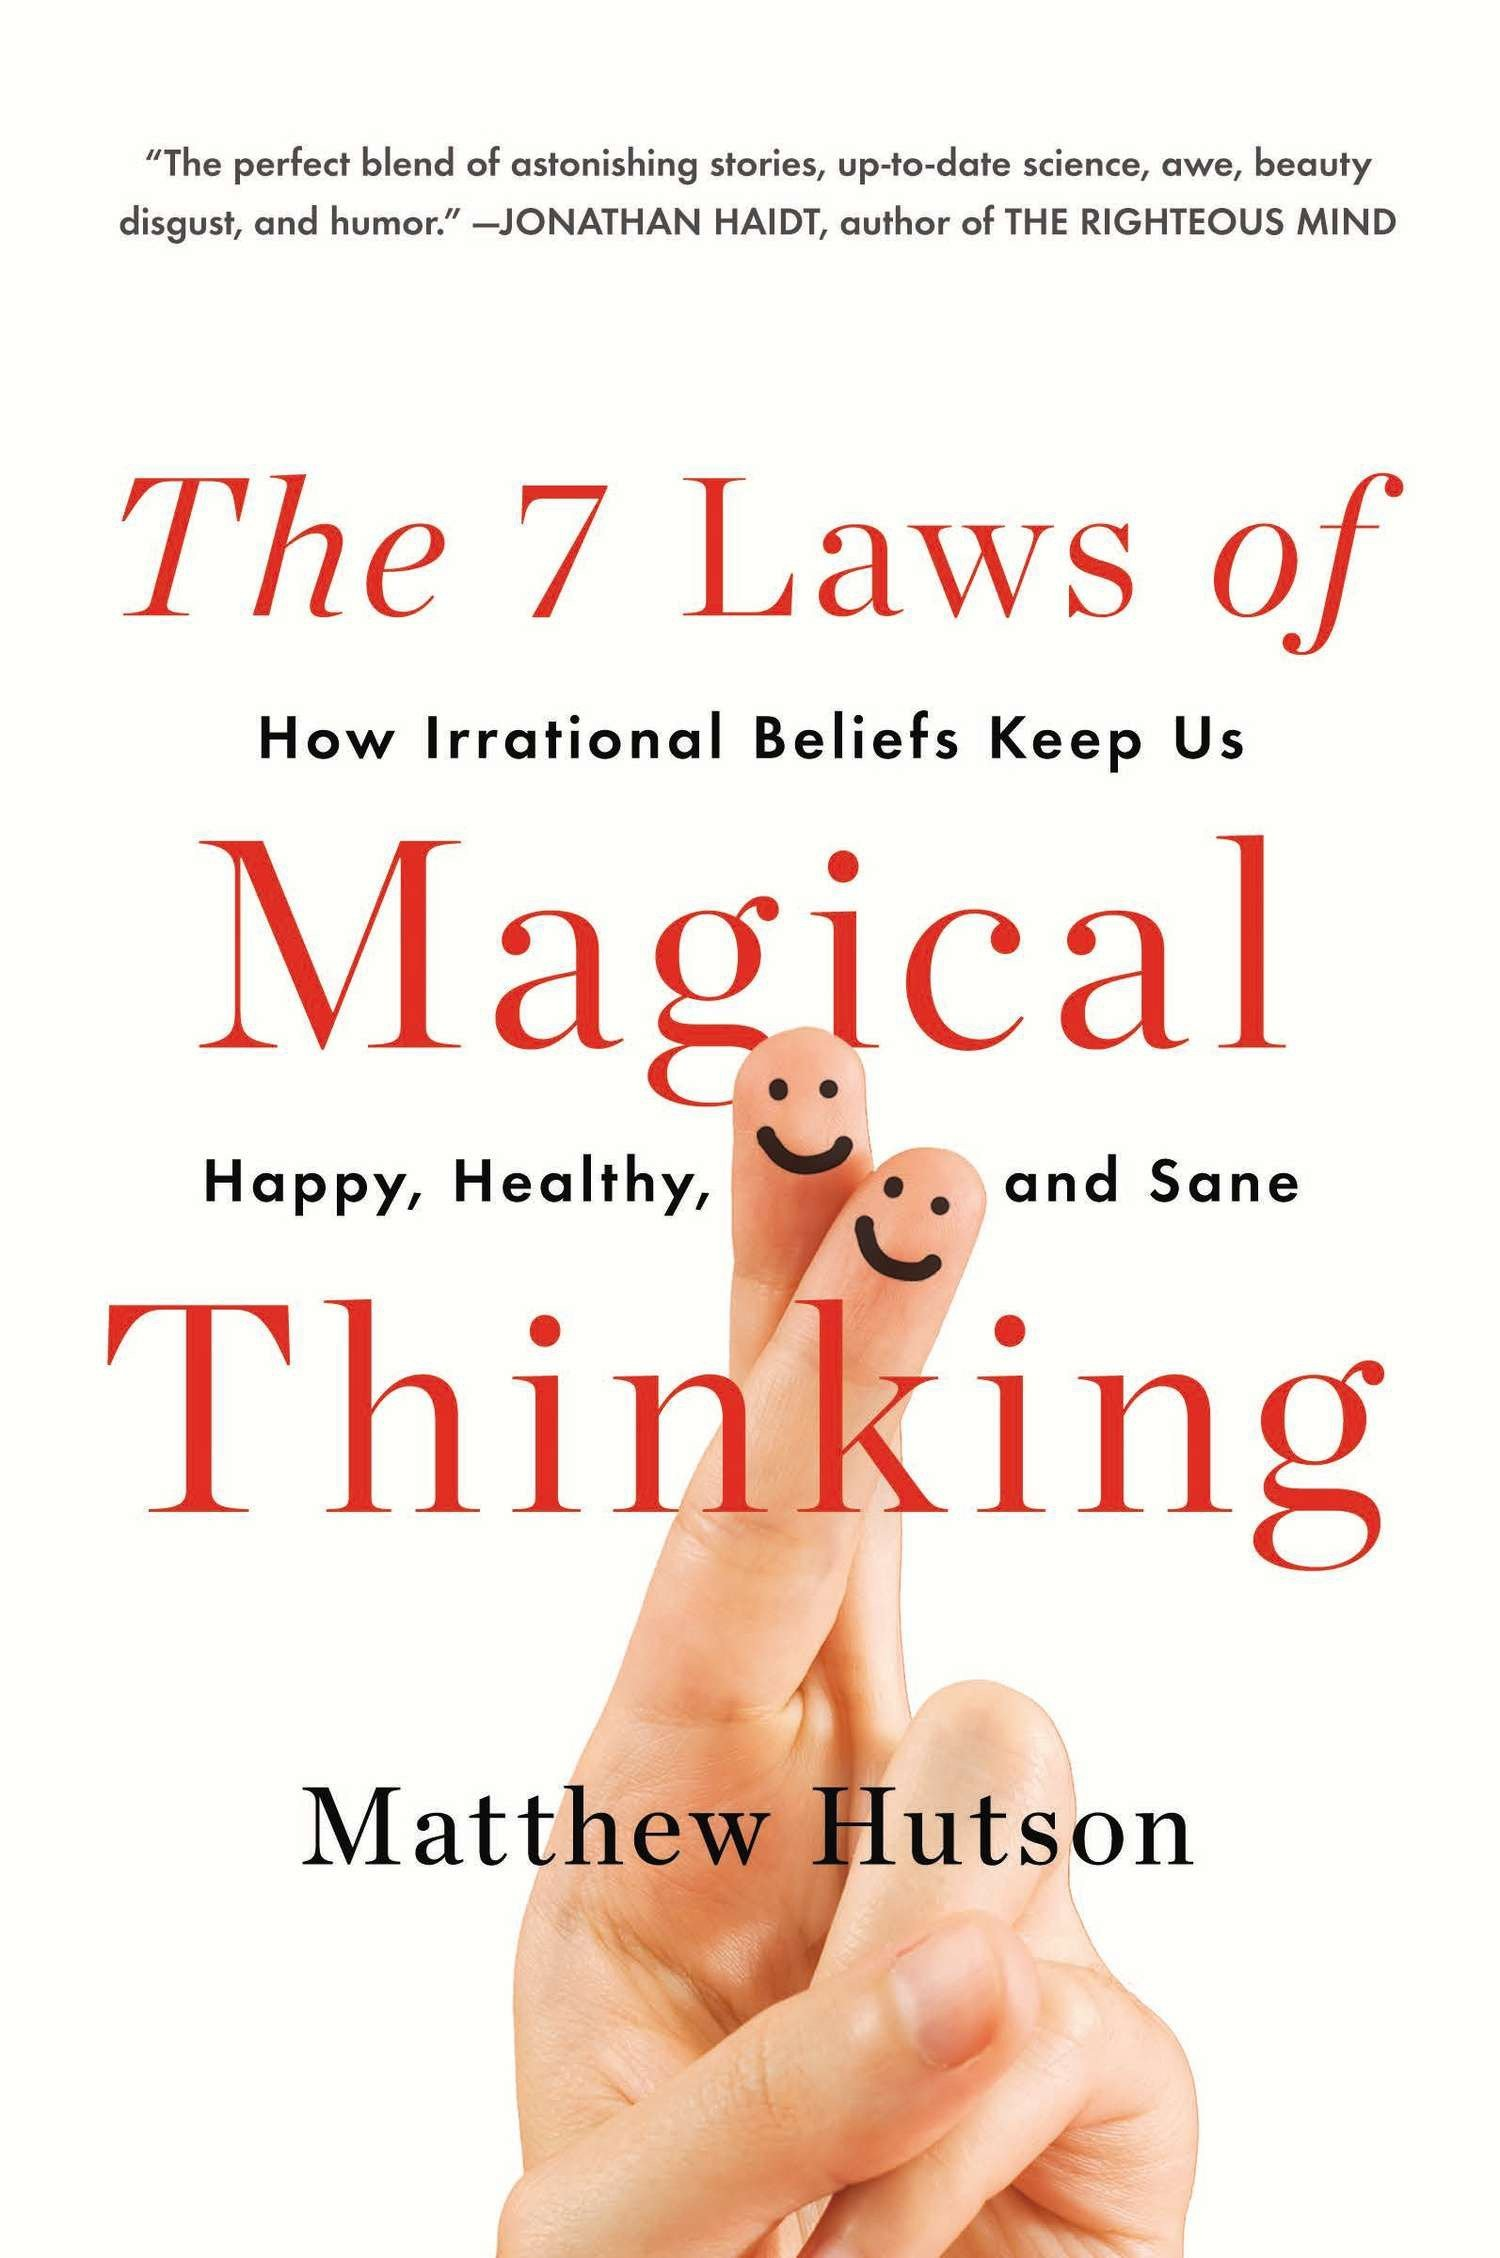 matthew hutson the 7 laws of magical thinking 2012